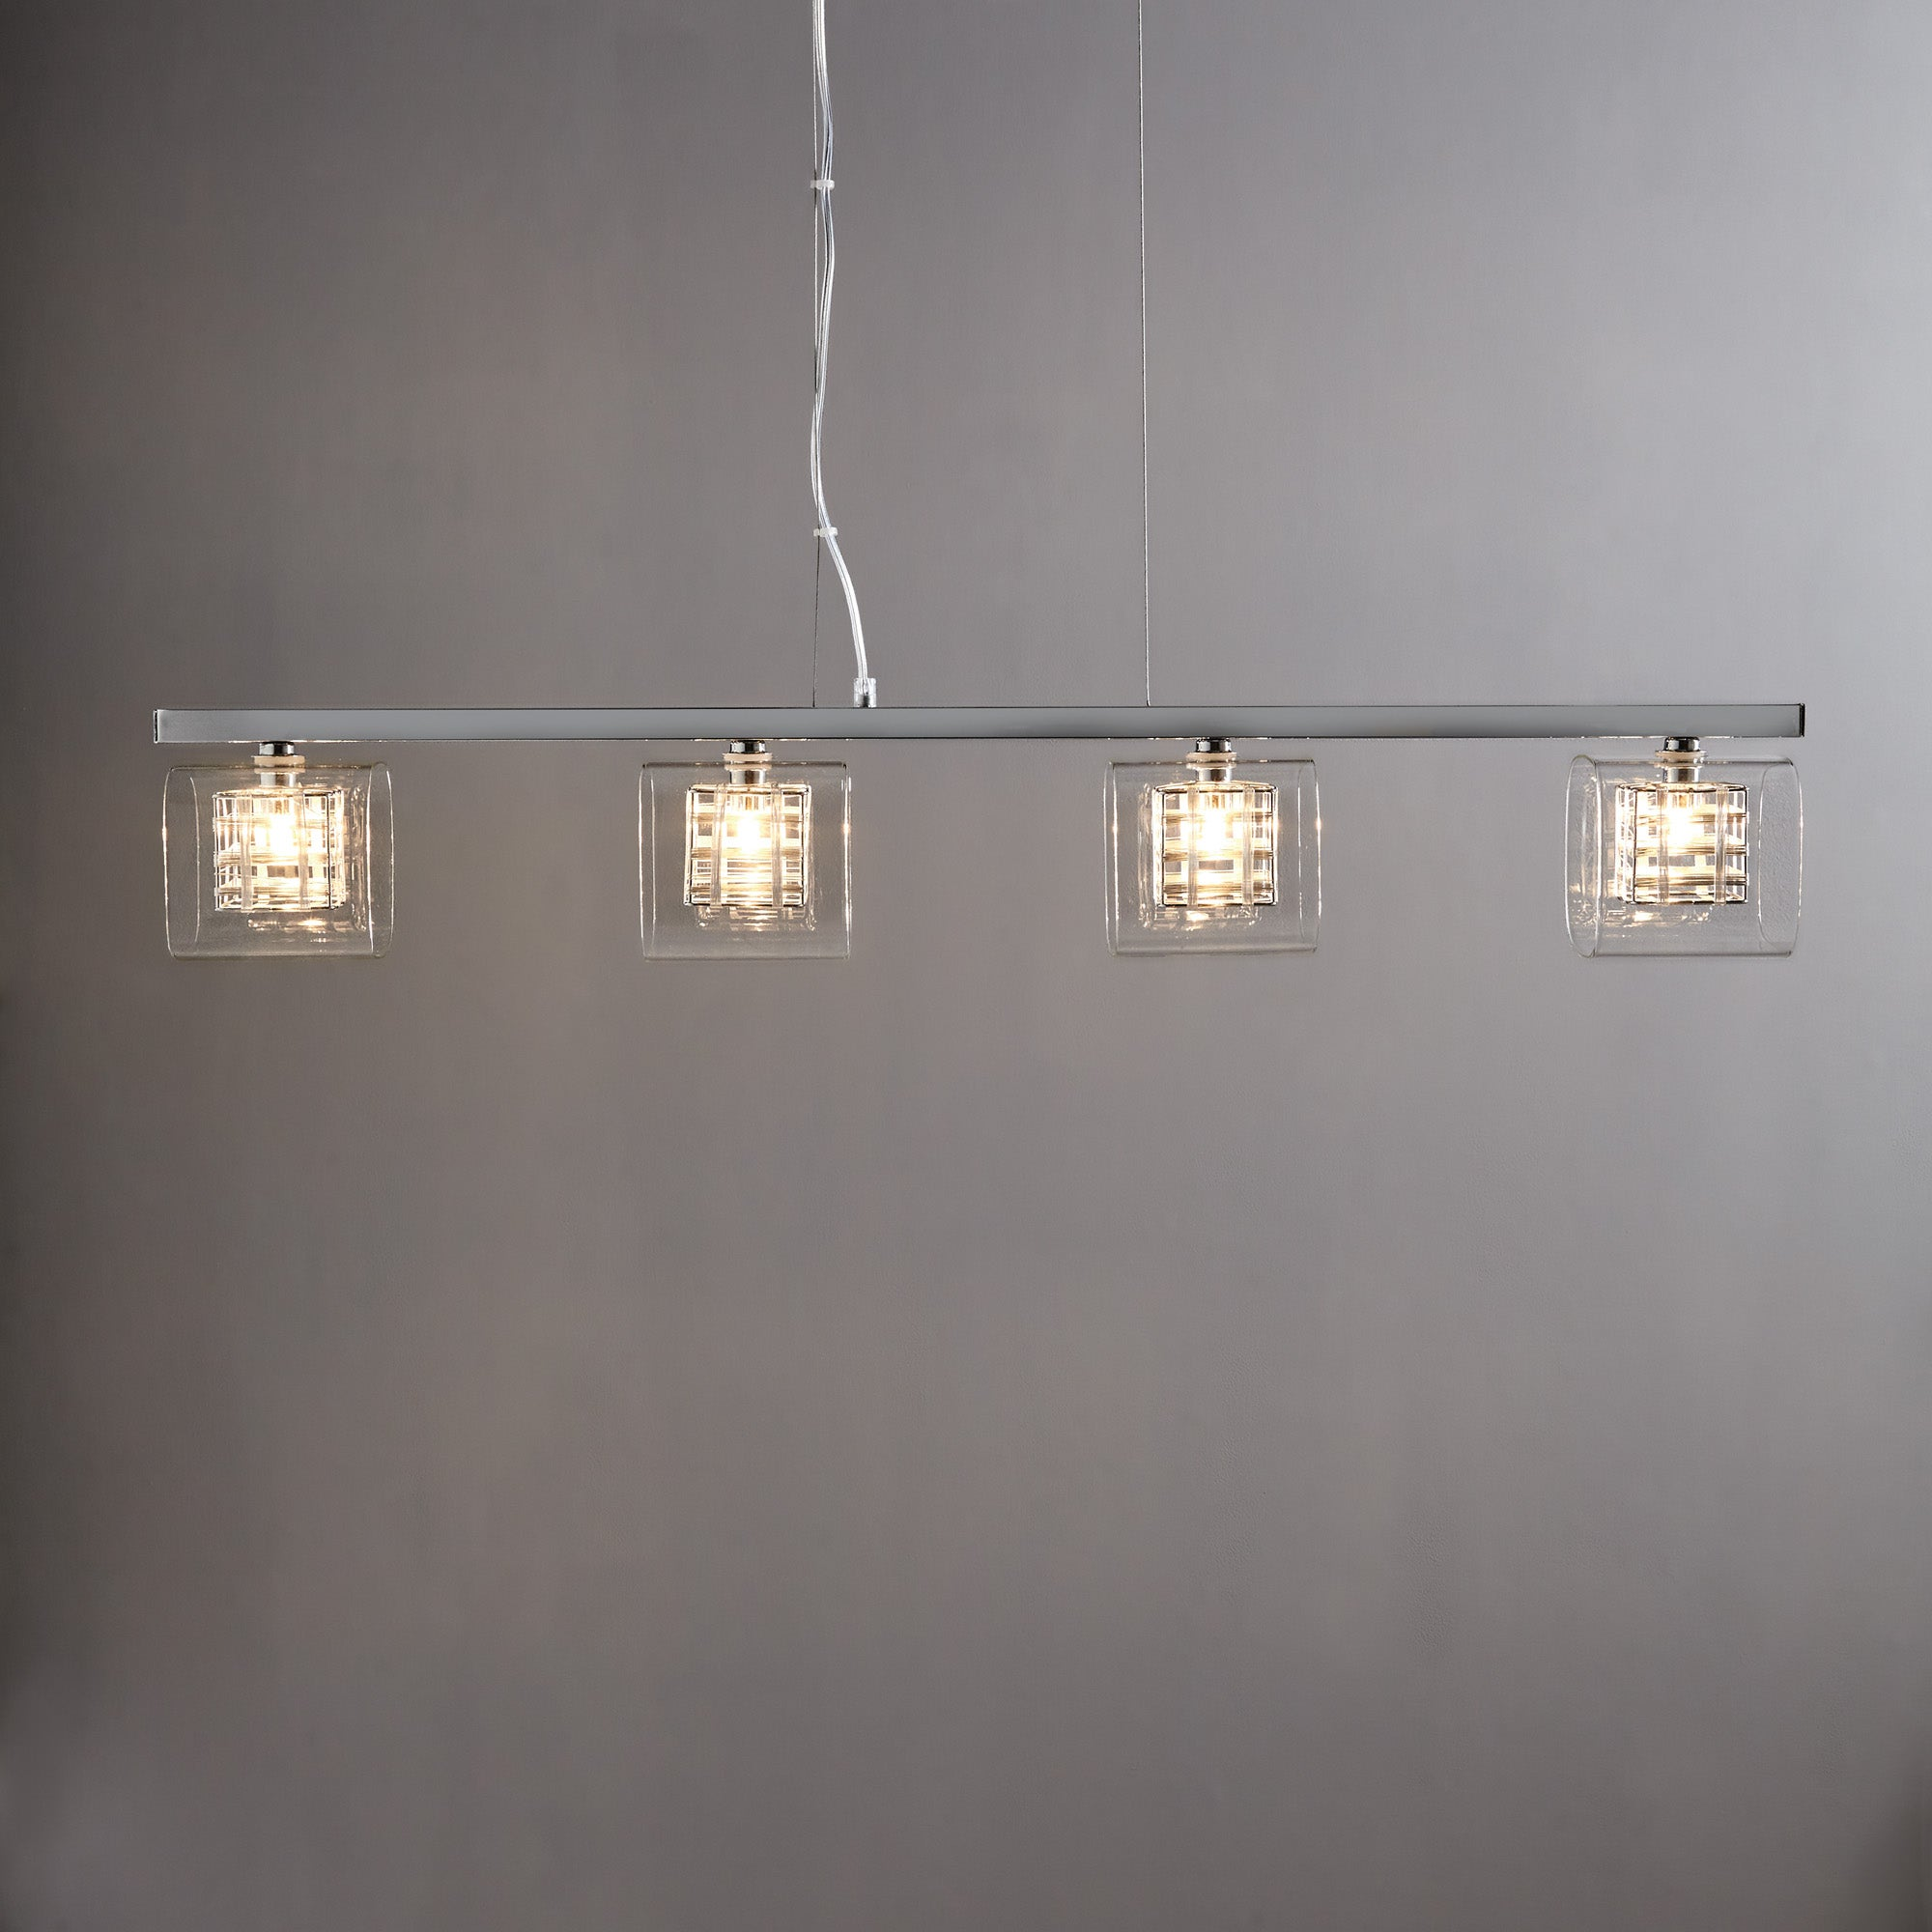 Adam Wired Cube 4 Bar Light Ceiling Fitting Chrome